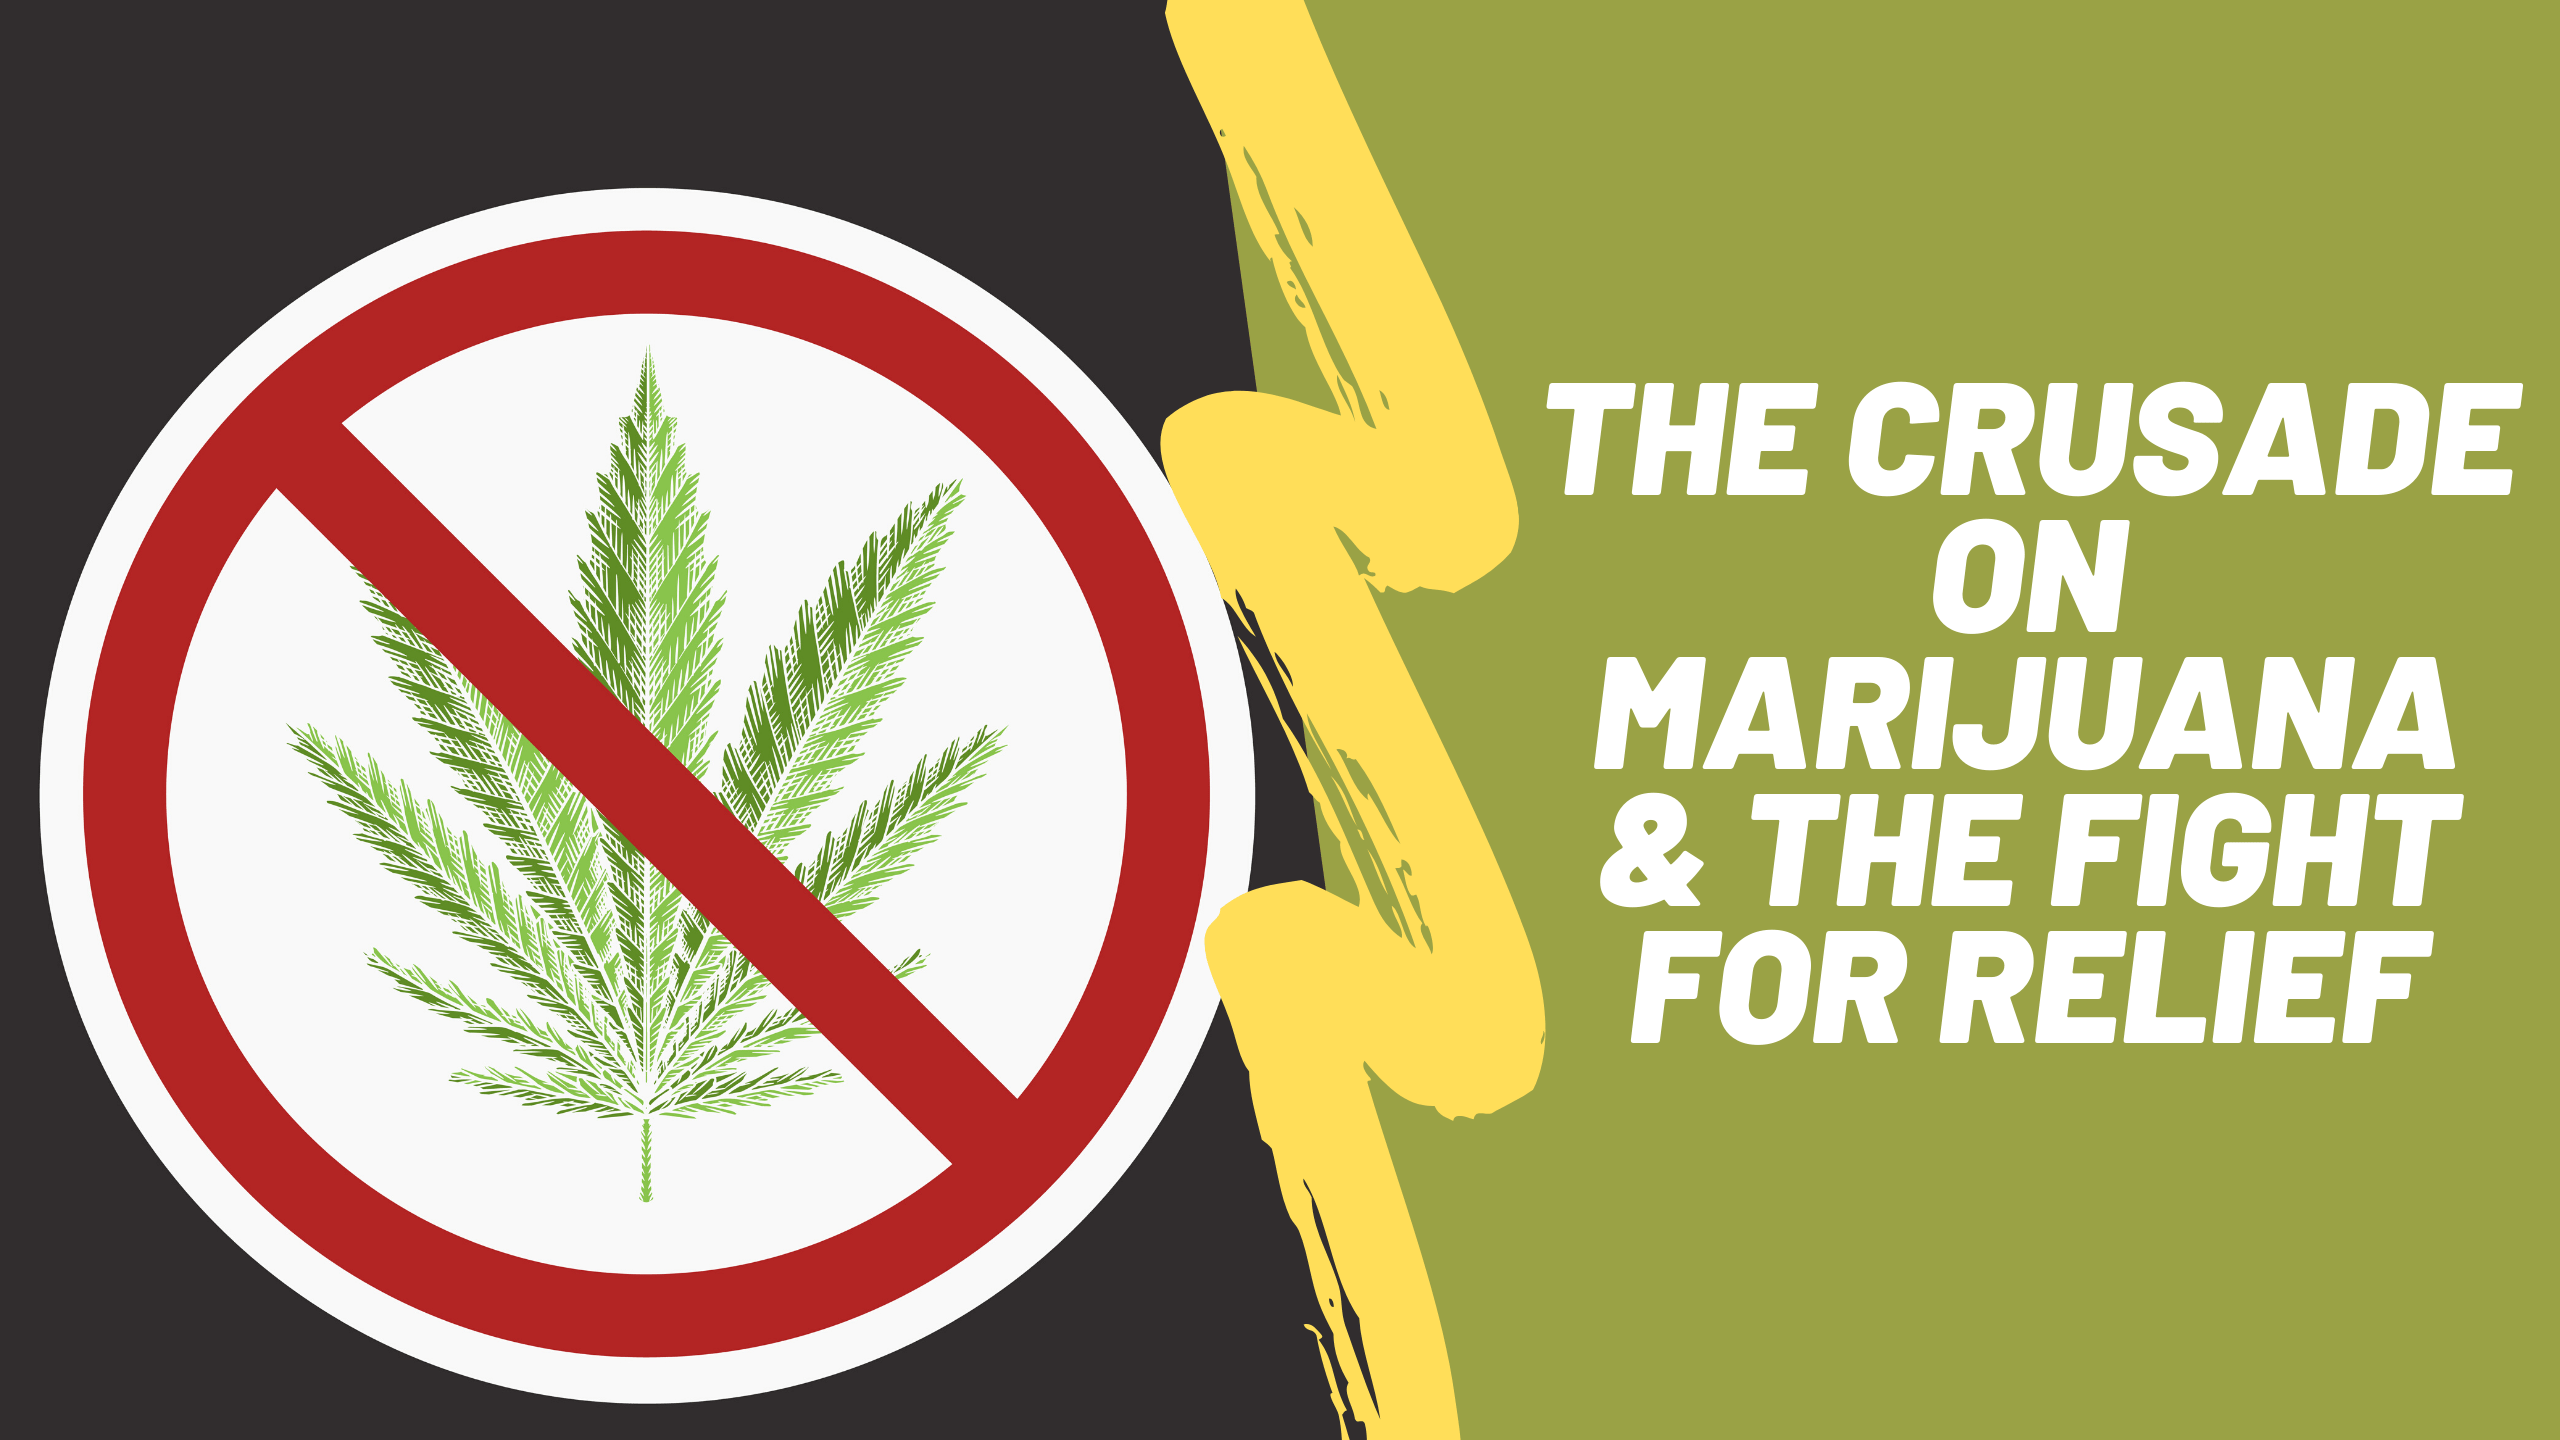 The Crusade on Marijuana & The Fight for Relief